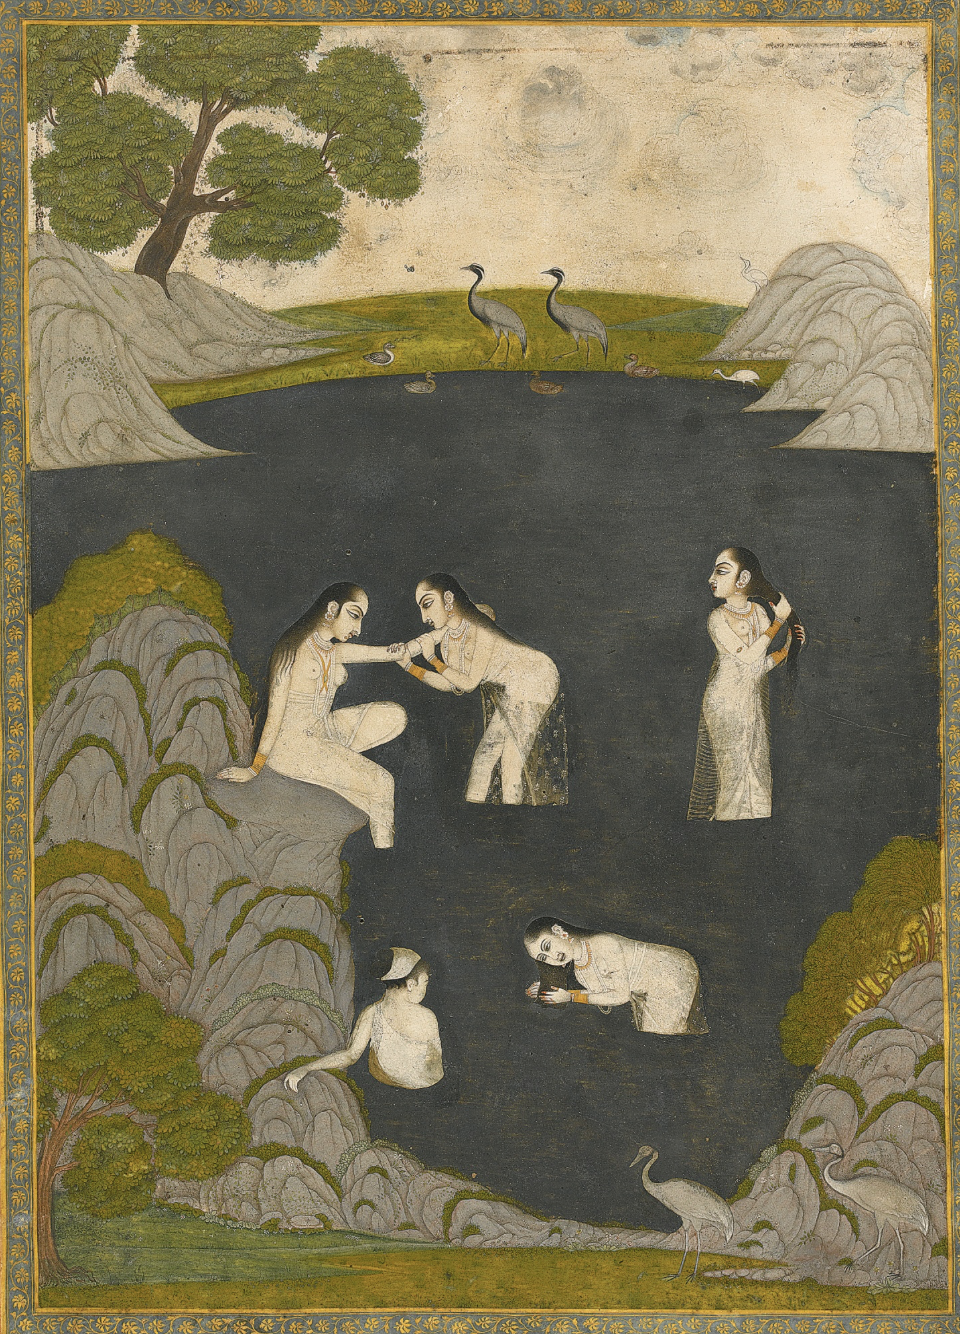 Ladies Bathing in a Rocky Pool, India, Awadh, late 18th century.